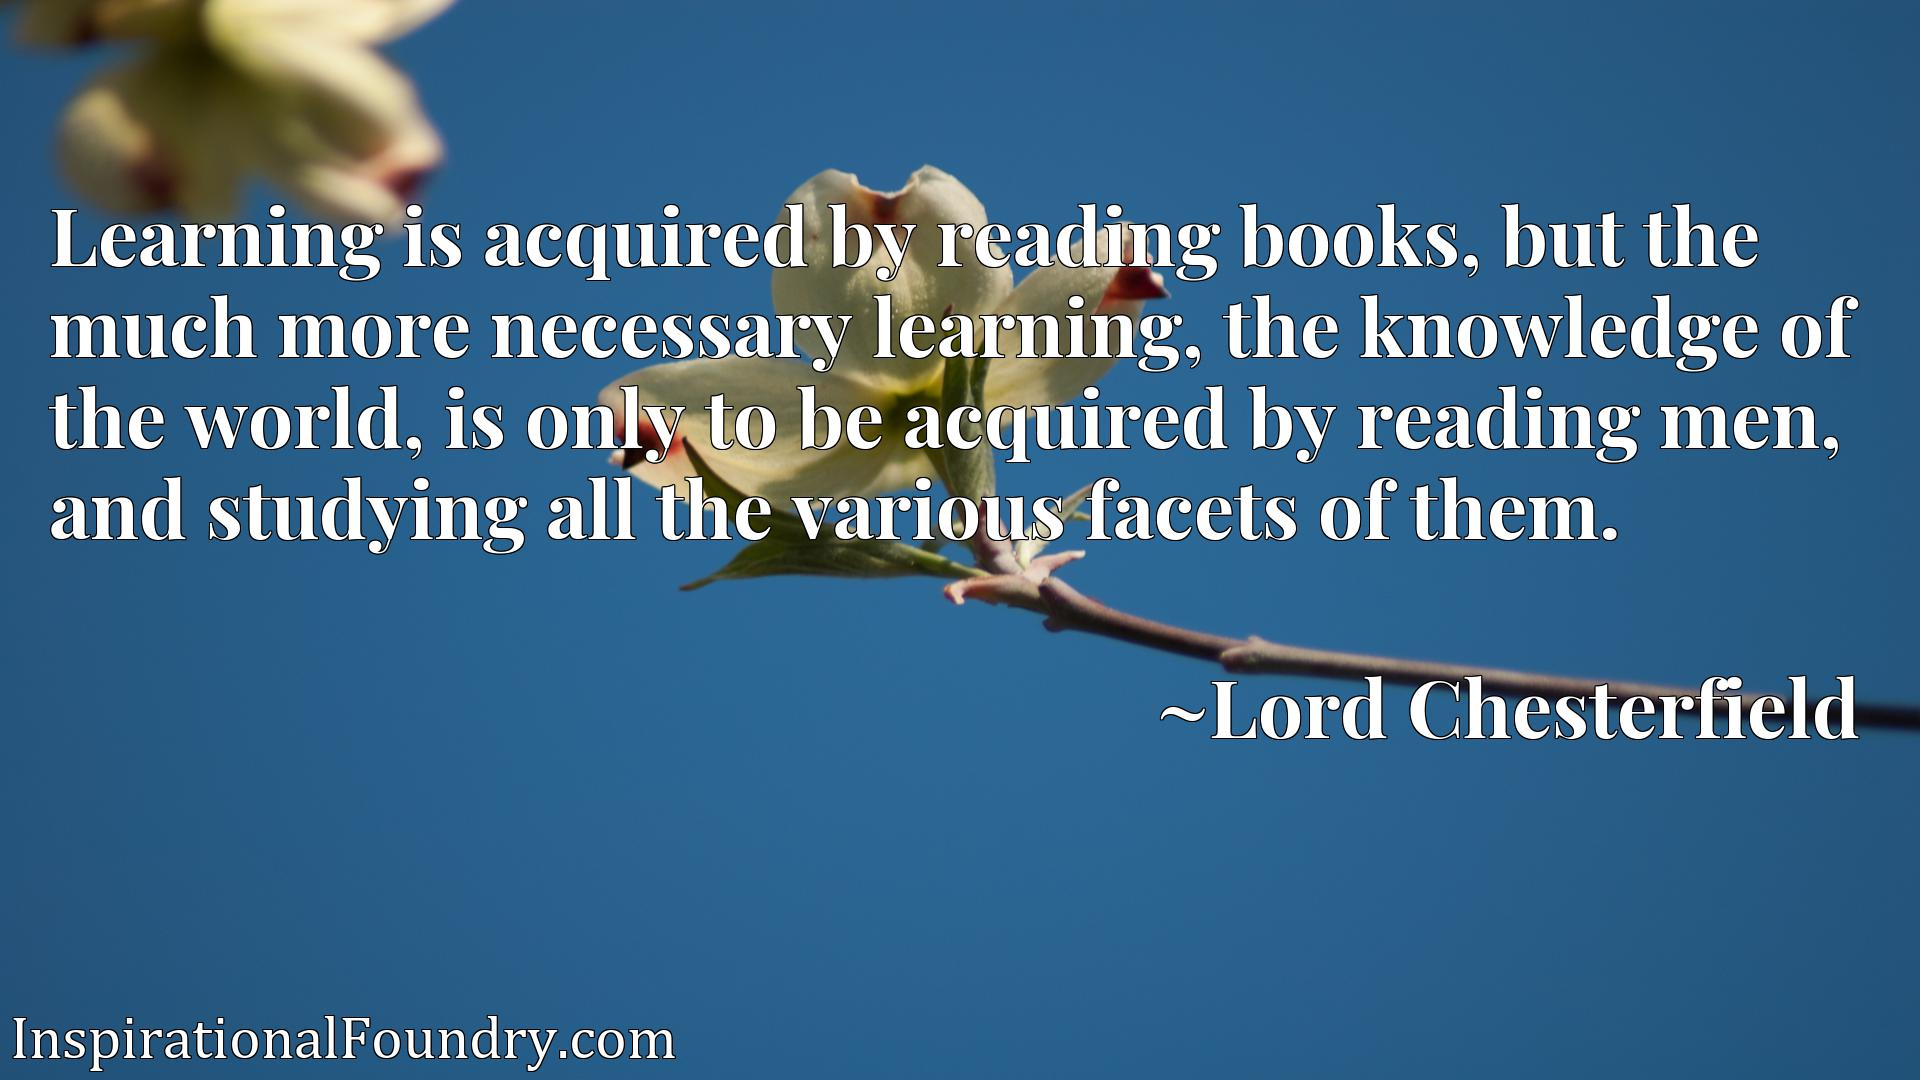 Learning is acquired by reading books, but the much more necessary learning, the knowledge of the world, is only to be acquired by reading men, and studying all the various facets of them.